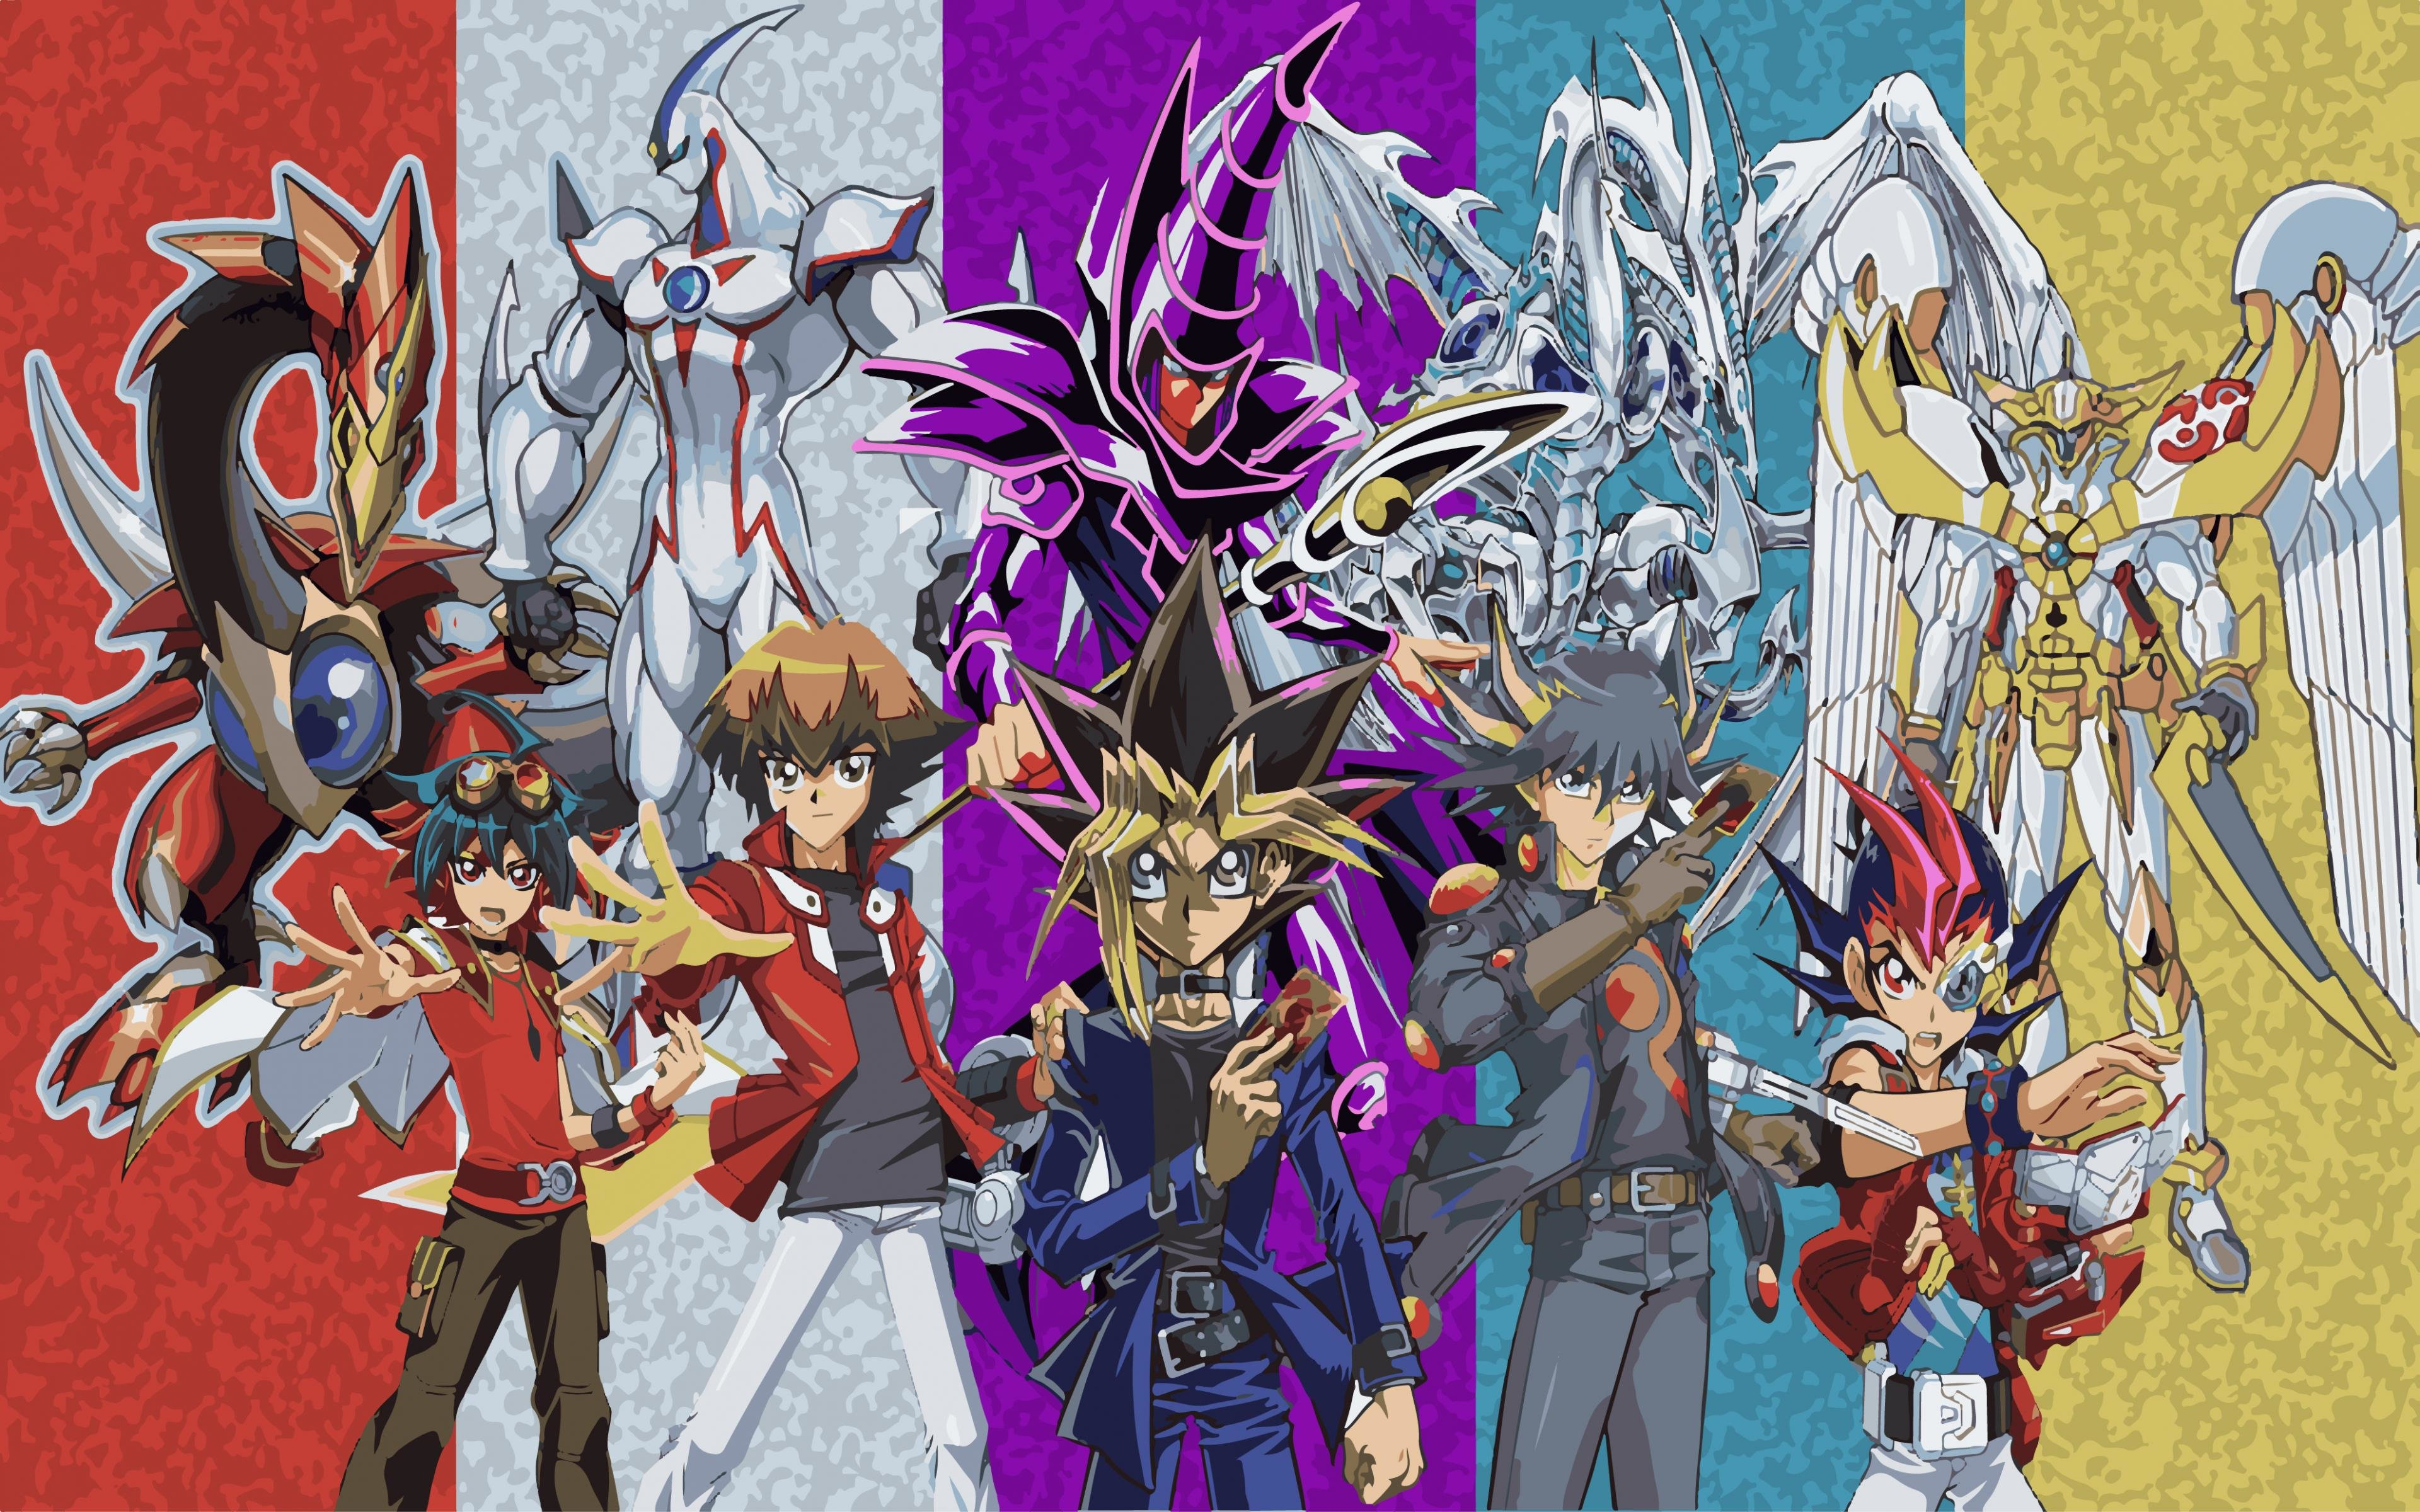 Awesome Yu Gi Oh Free Wallpaper Id 83887 For Hd 3840x2400 Computer